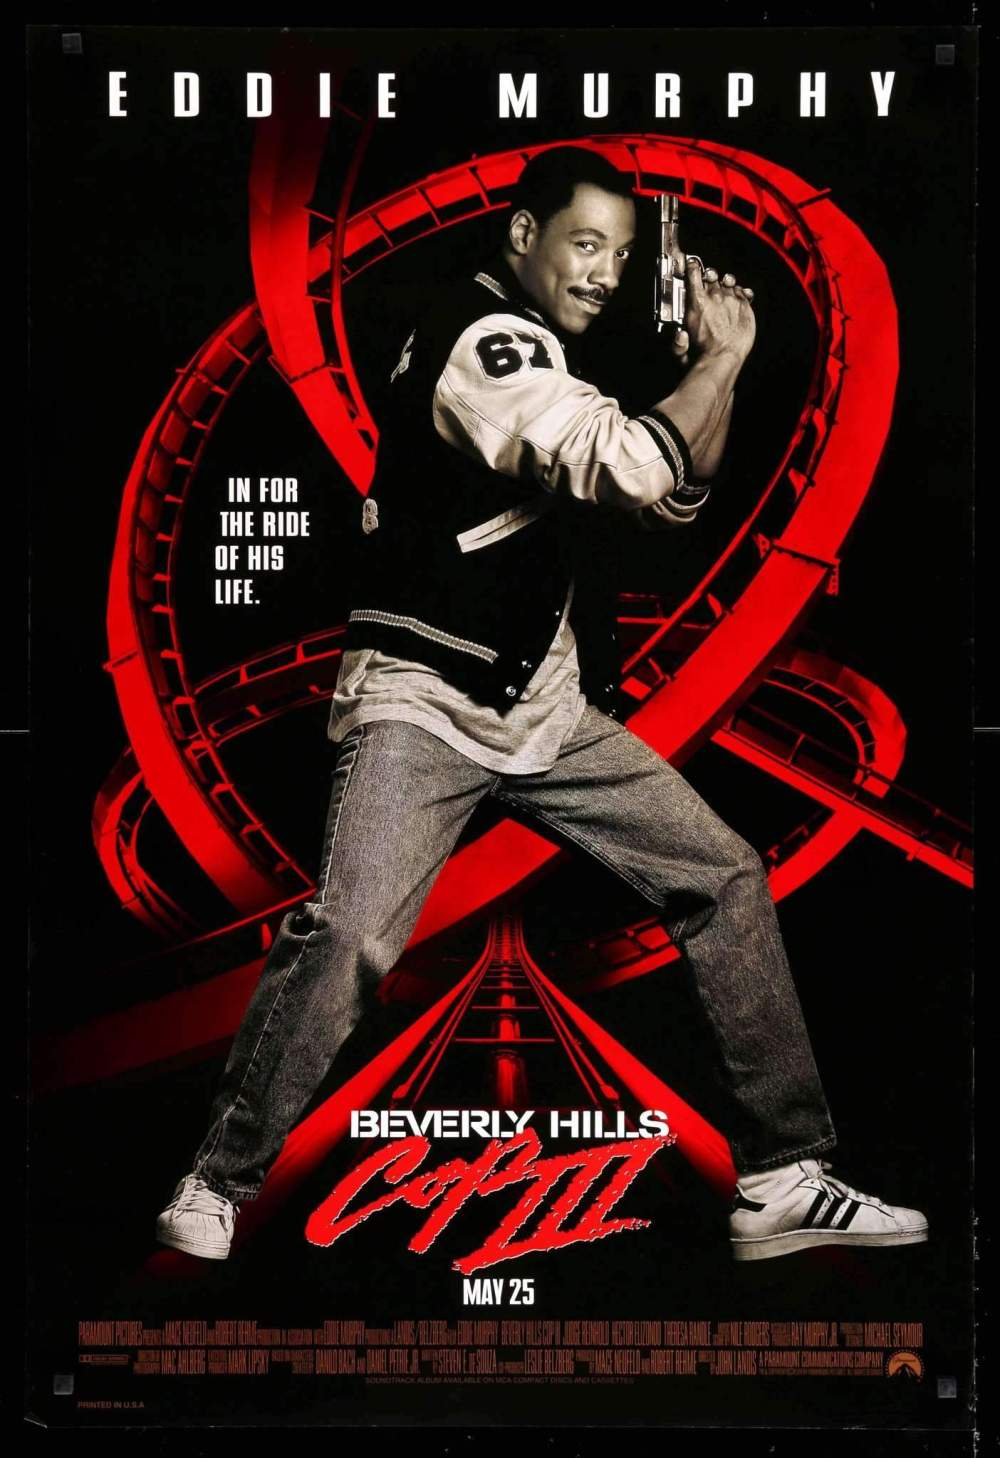 Beverly Hills Cop 3 movie poster